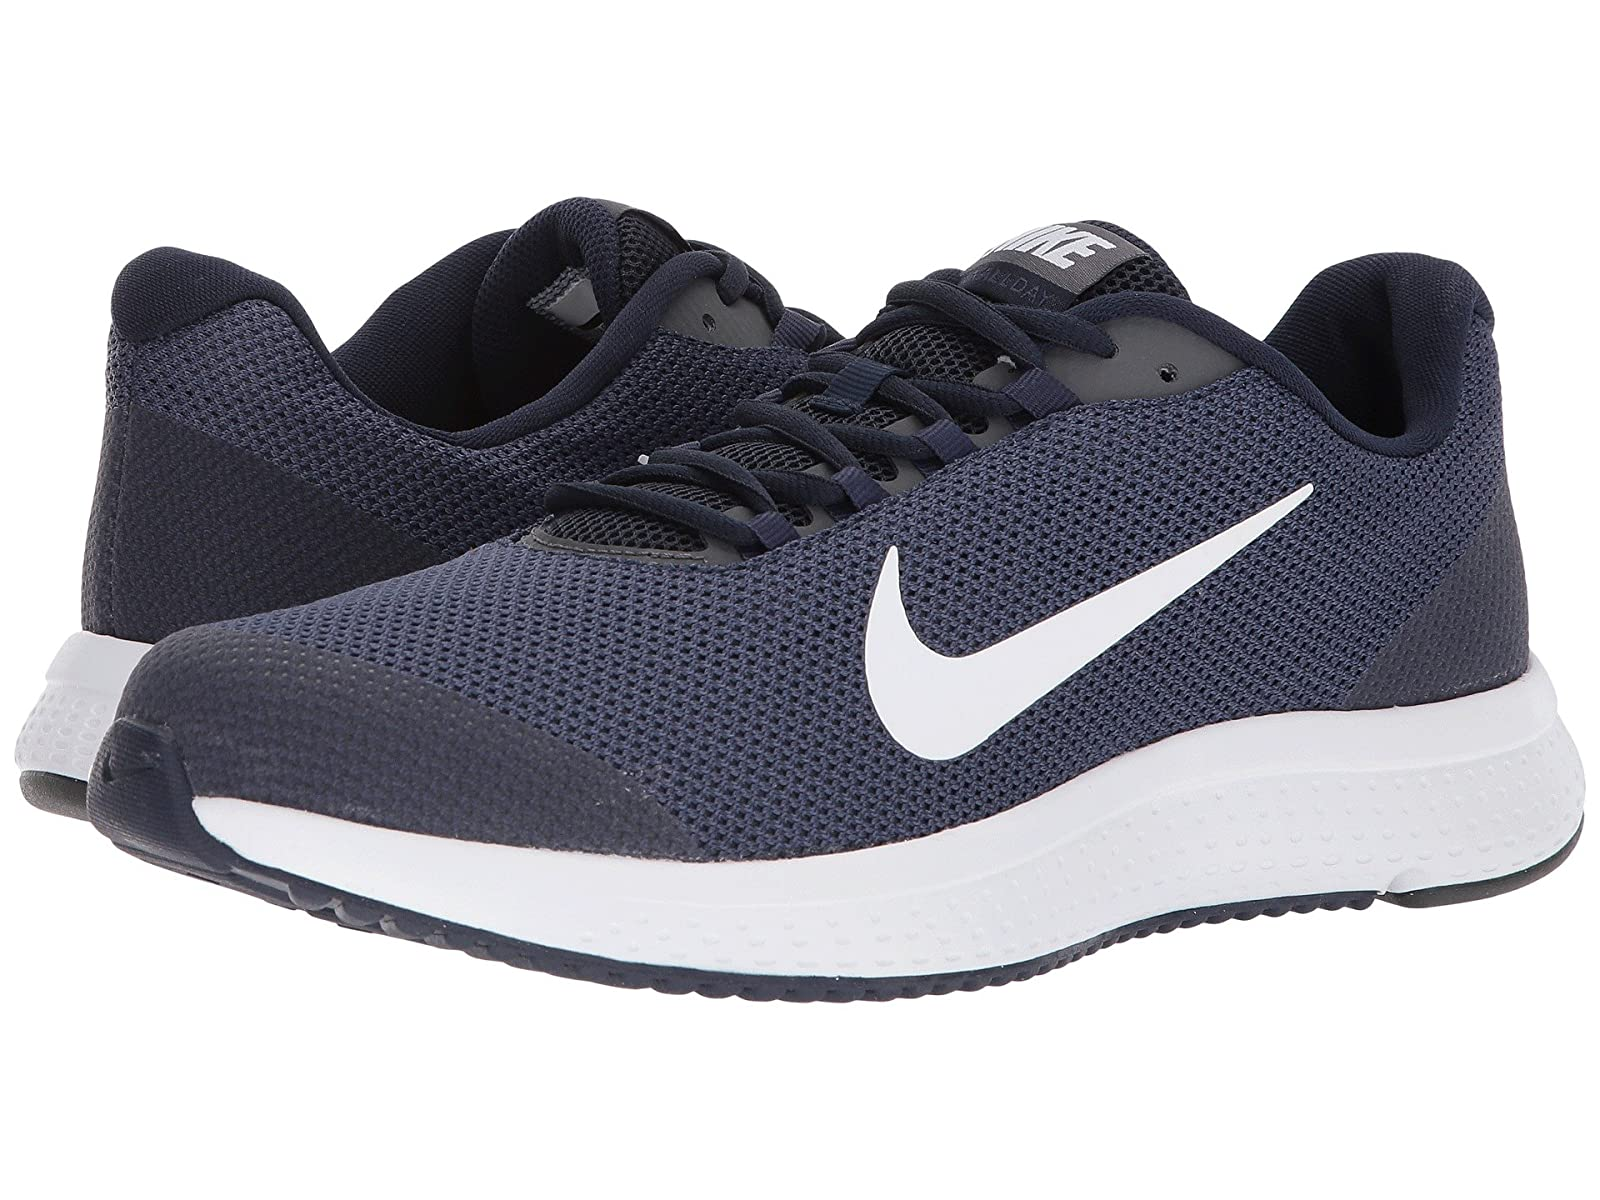 Man's/Woman's Man's/Woman's Man's/Woman's Gentlemen/Ladies Nike RunAllDay High Quality and Low Effort  Excellent Value b570e4